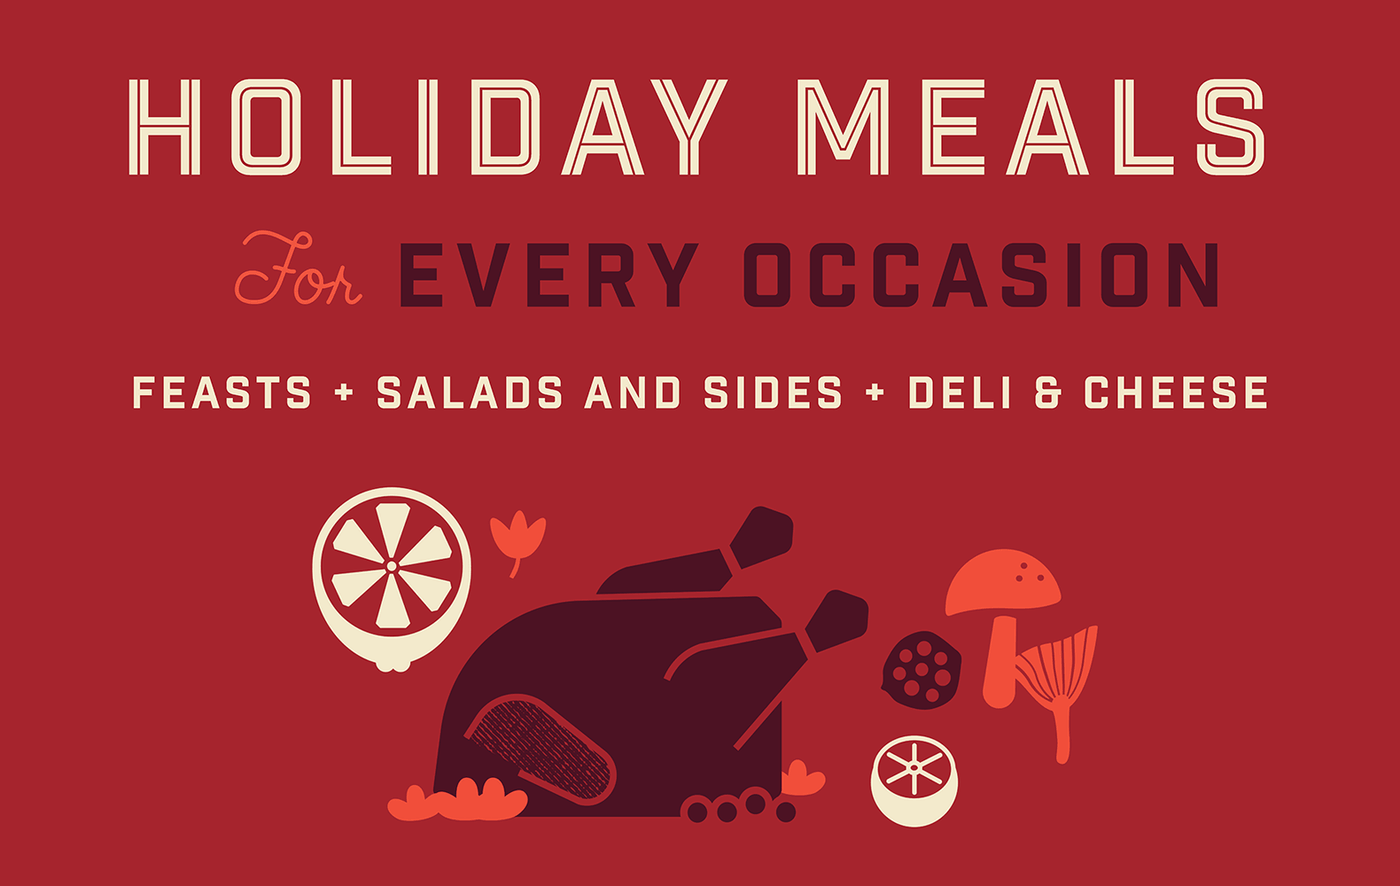 Gus's Market 2019 Holiday Meals Mobile Banner